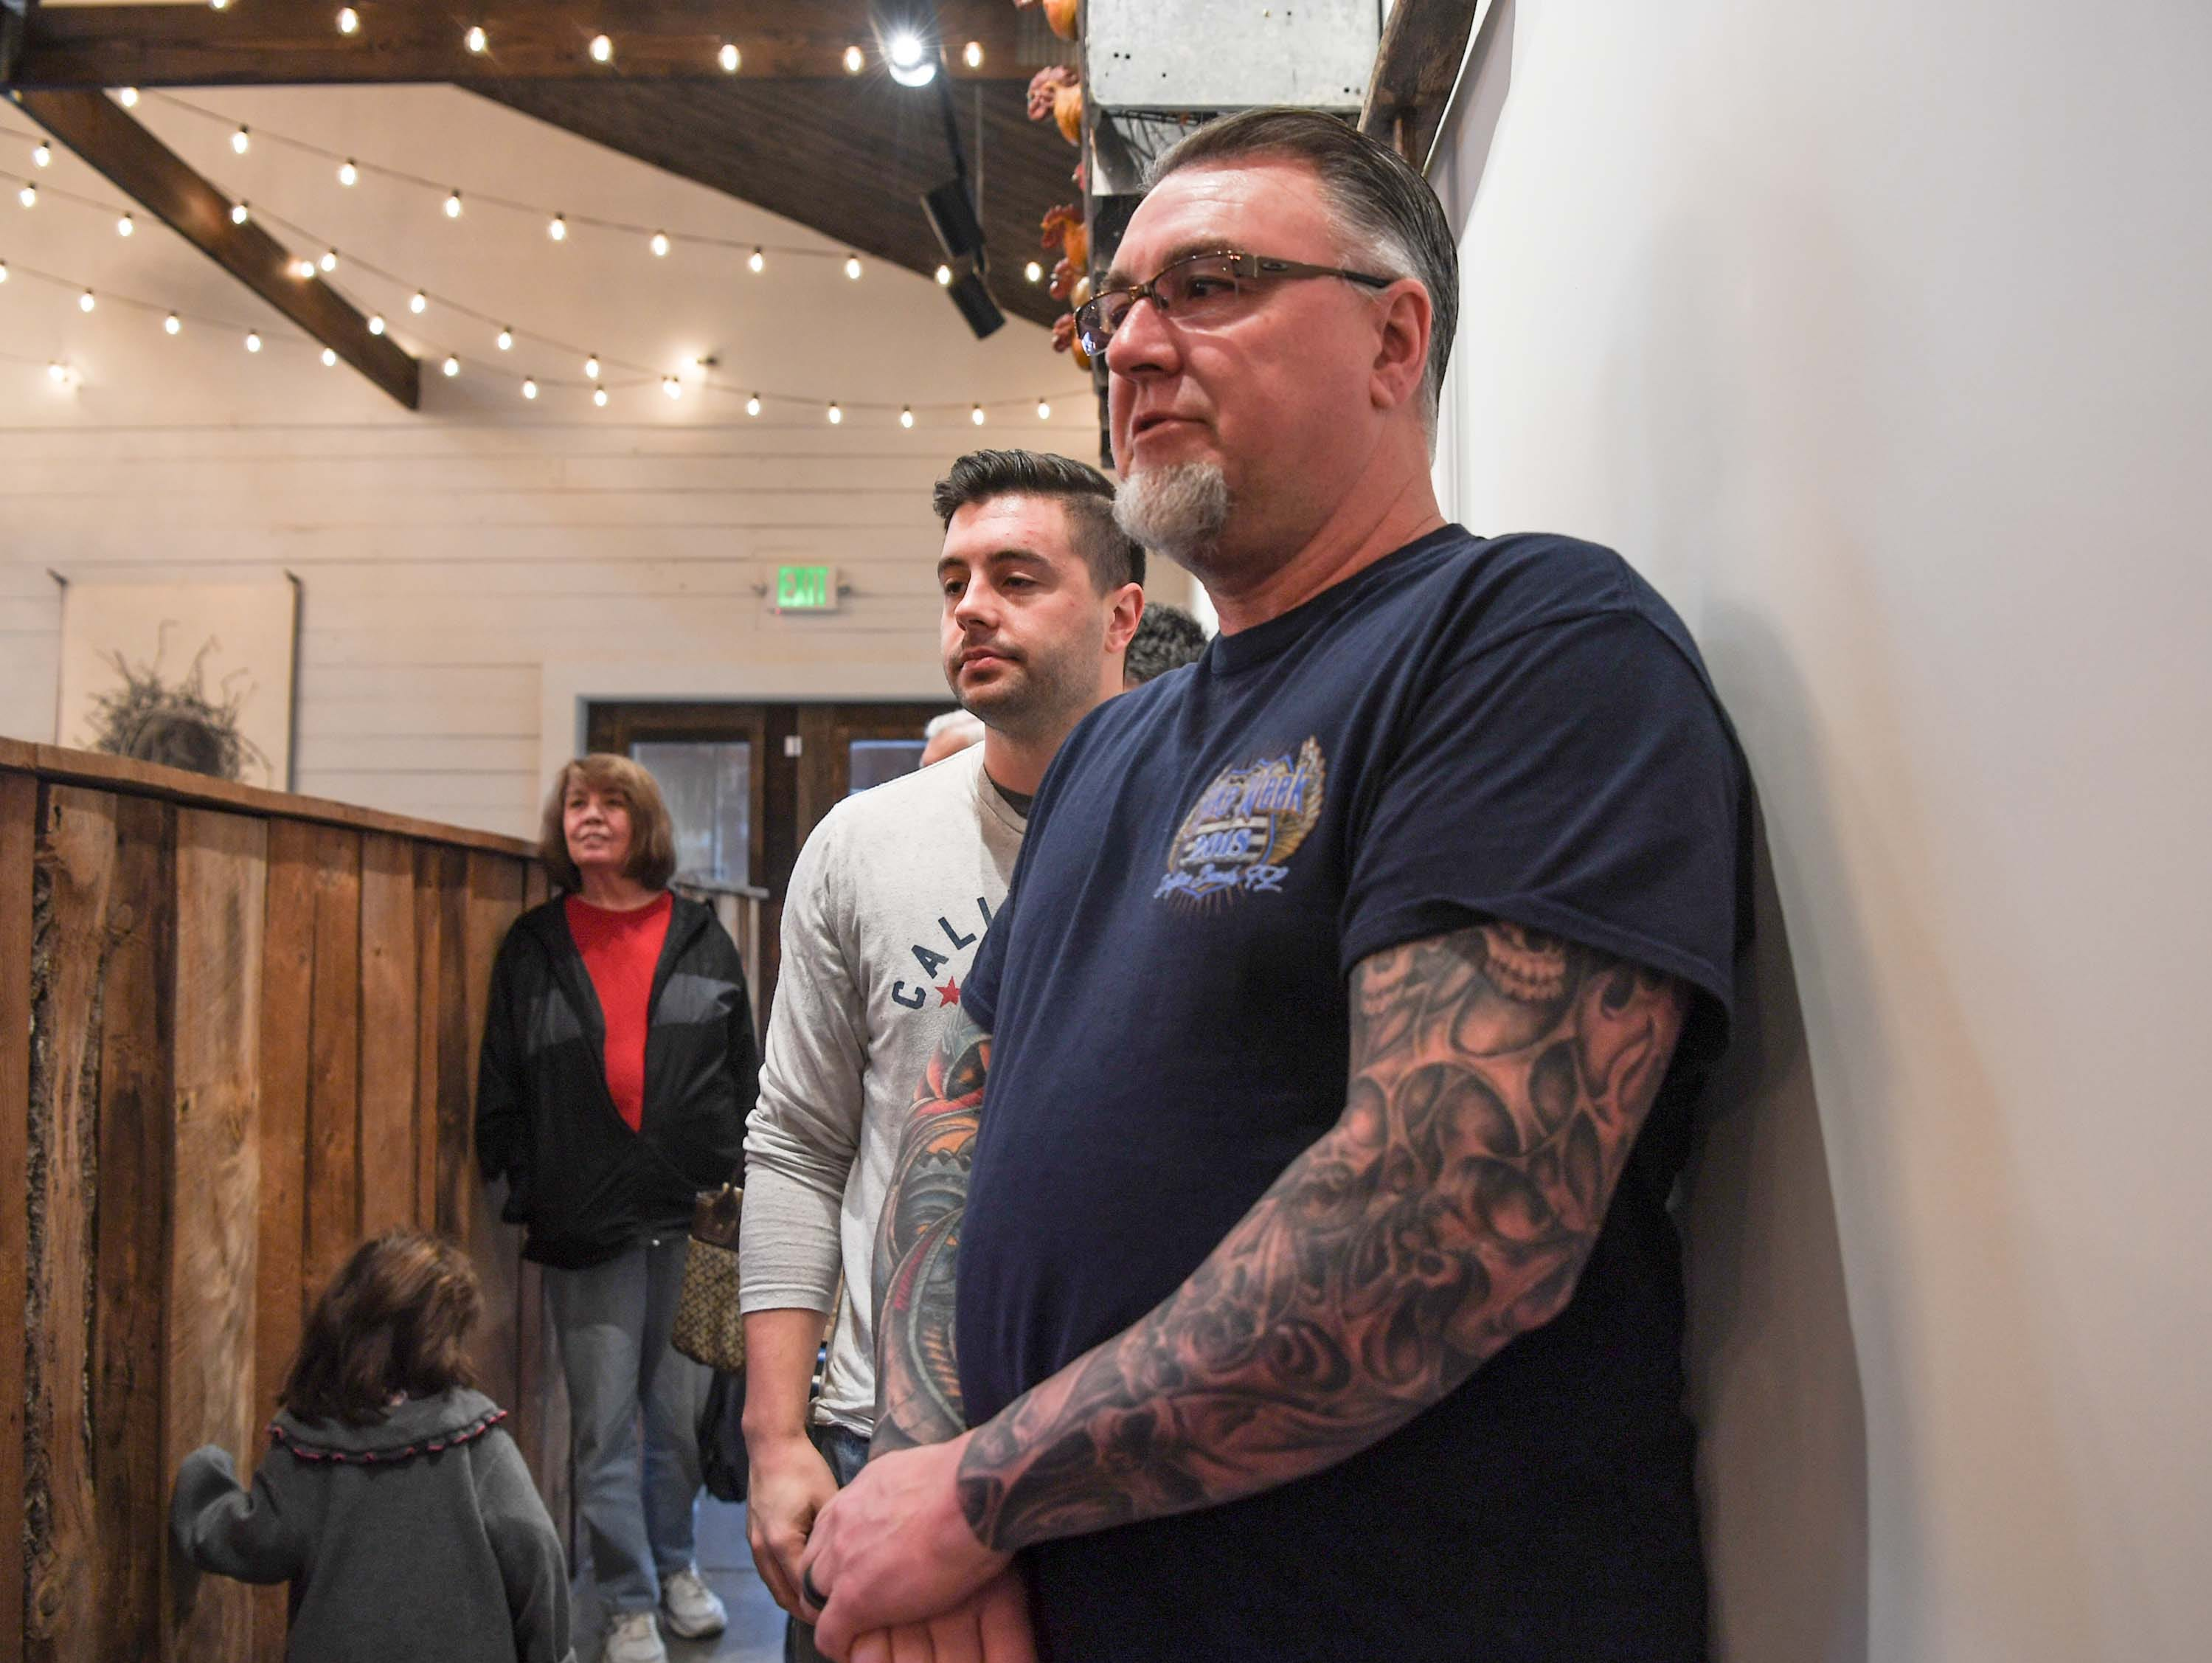 Steele Ramey, left, and his father Scott Ramey of Anderson are first in line on opening day of Smokin' Pig on Evergreen Road in Anderson Thursday, February 28, 2019. The new location is the fourth, with locations in Pendleton, Williamston, and Easley.